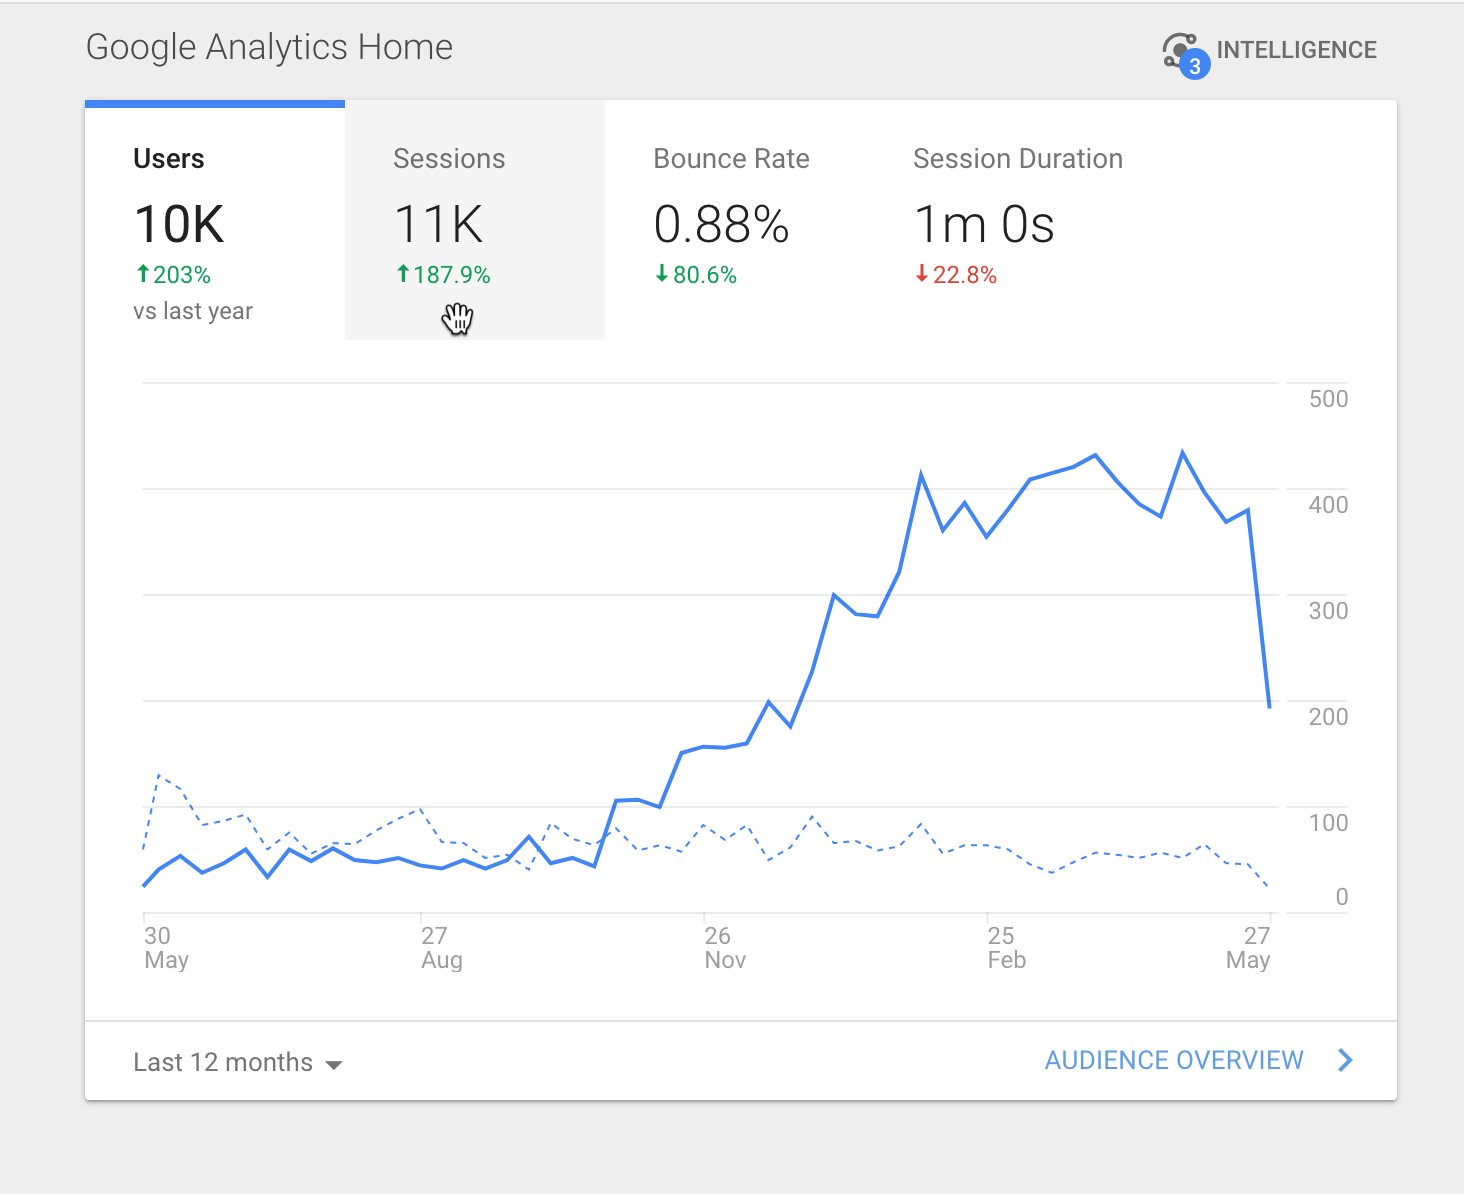 google analytics sessions represents how many times people visit your website